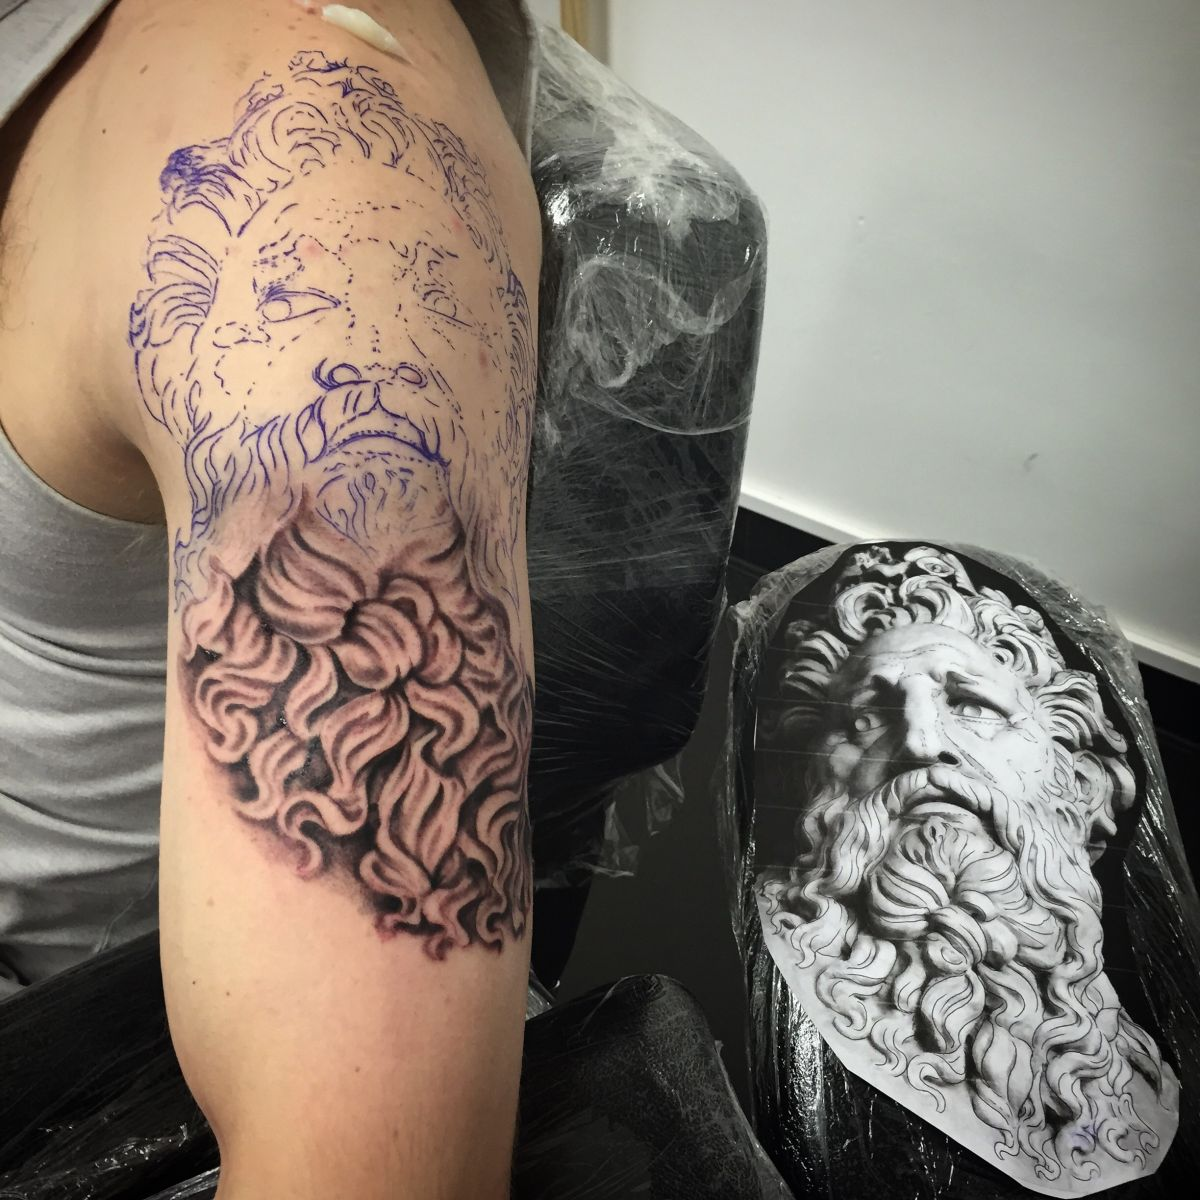 Zeus tattoo in progress